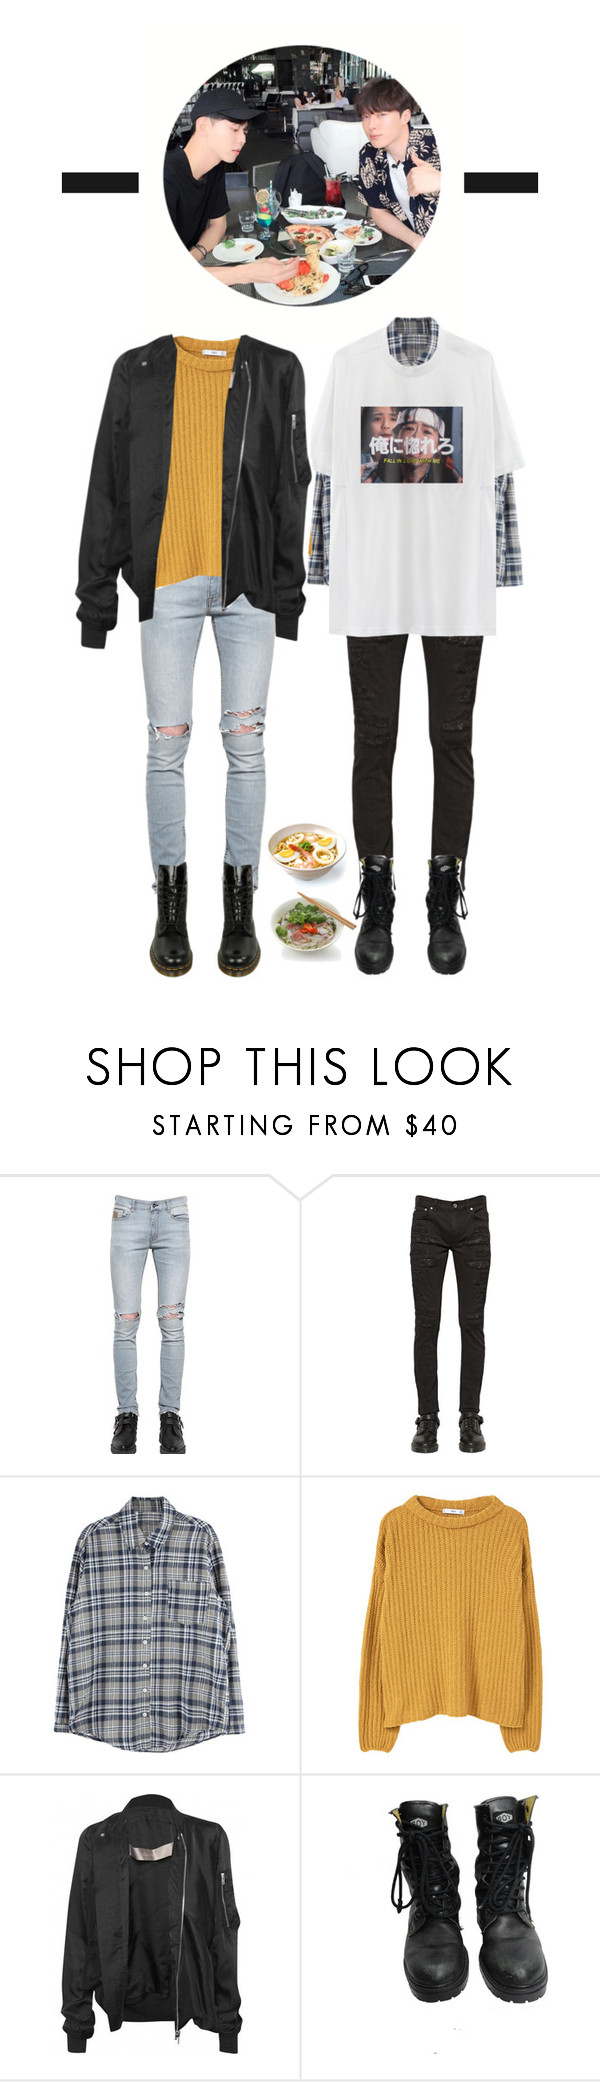 """{ Insik & AM } Going out to eat"" by hi4-official ❤ liked on Polyvore featuring April 77, BLK DNM, MANGO, VFiles, Rick Owens, BOY London, Dr. Martens, men's fashion and menswear"